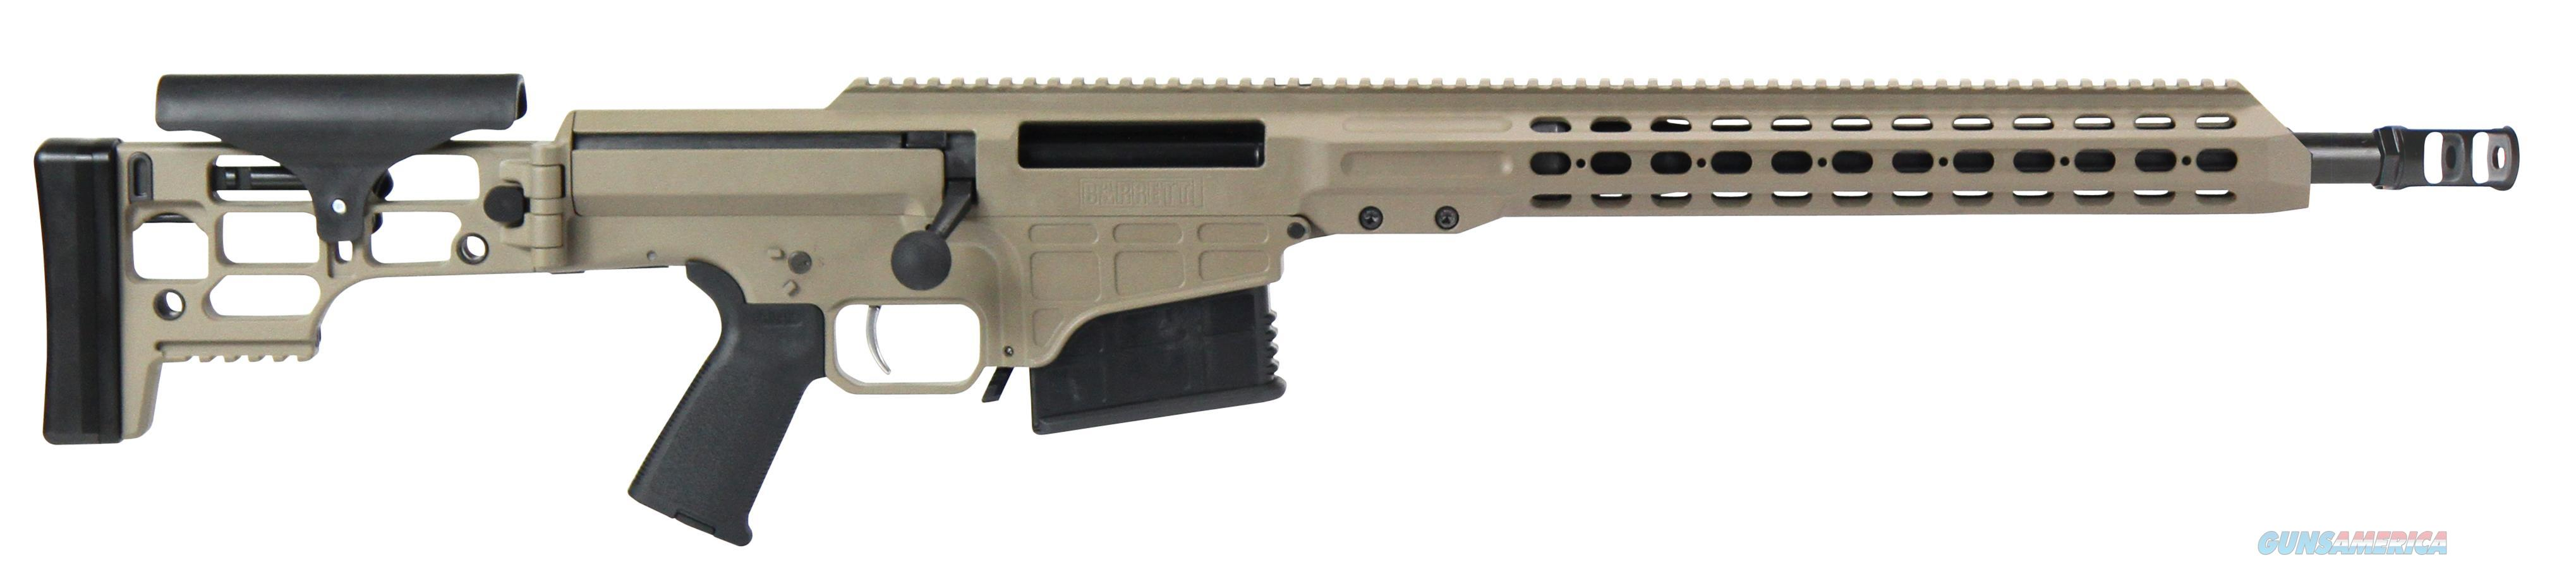 "Barrett 14343 Mrad Bolt 308 Winchester 17"" 10+1 Folding Metal Flat Dark Earth Stk Fde/Blk 14343  Guns > Rifles > B Misc Rifles"